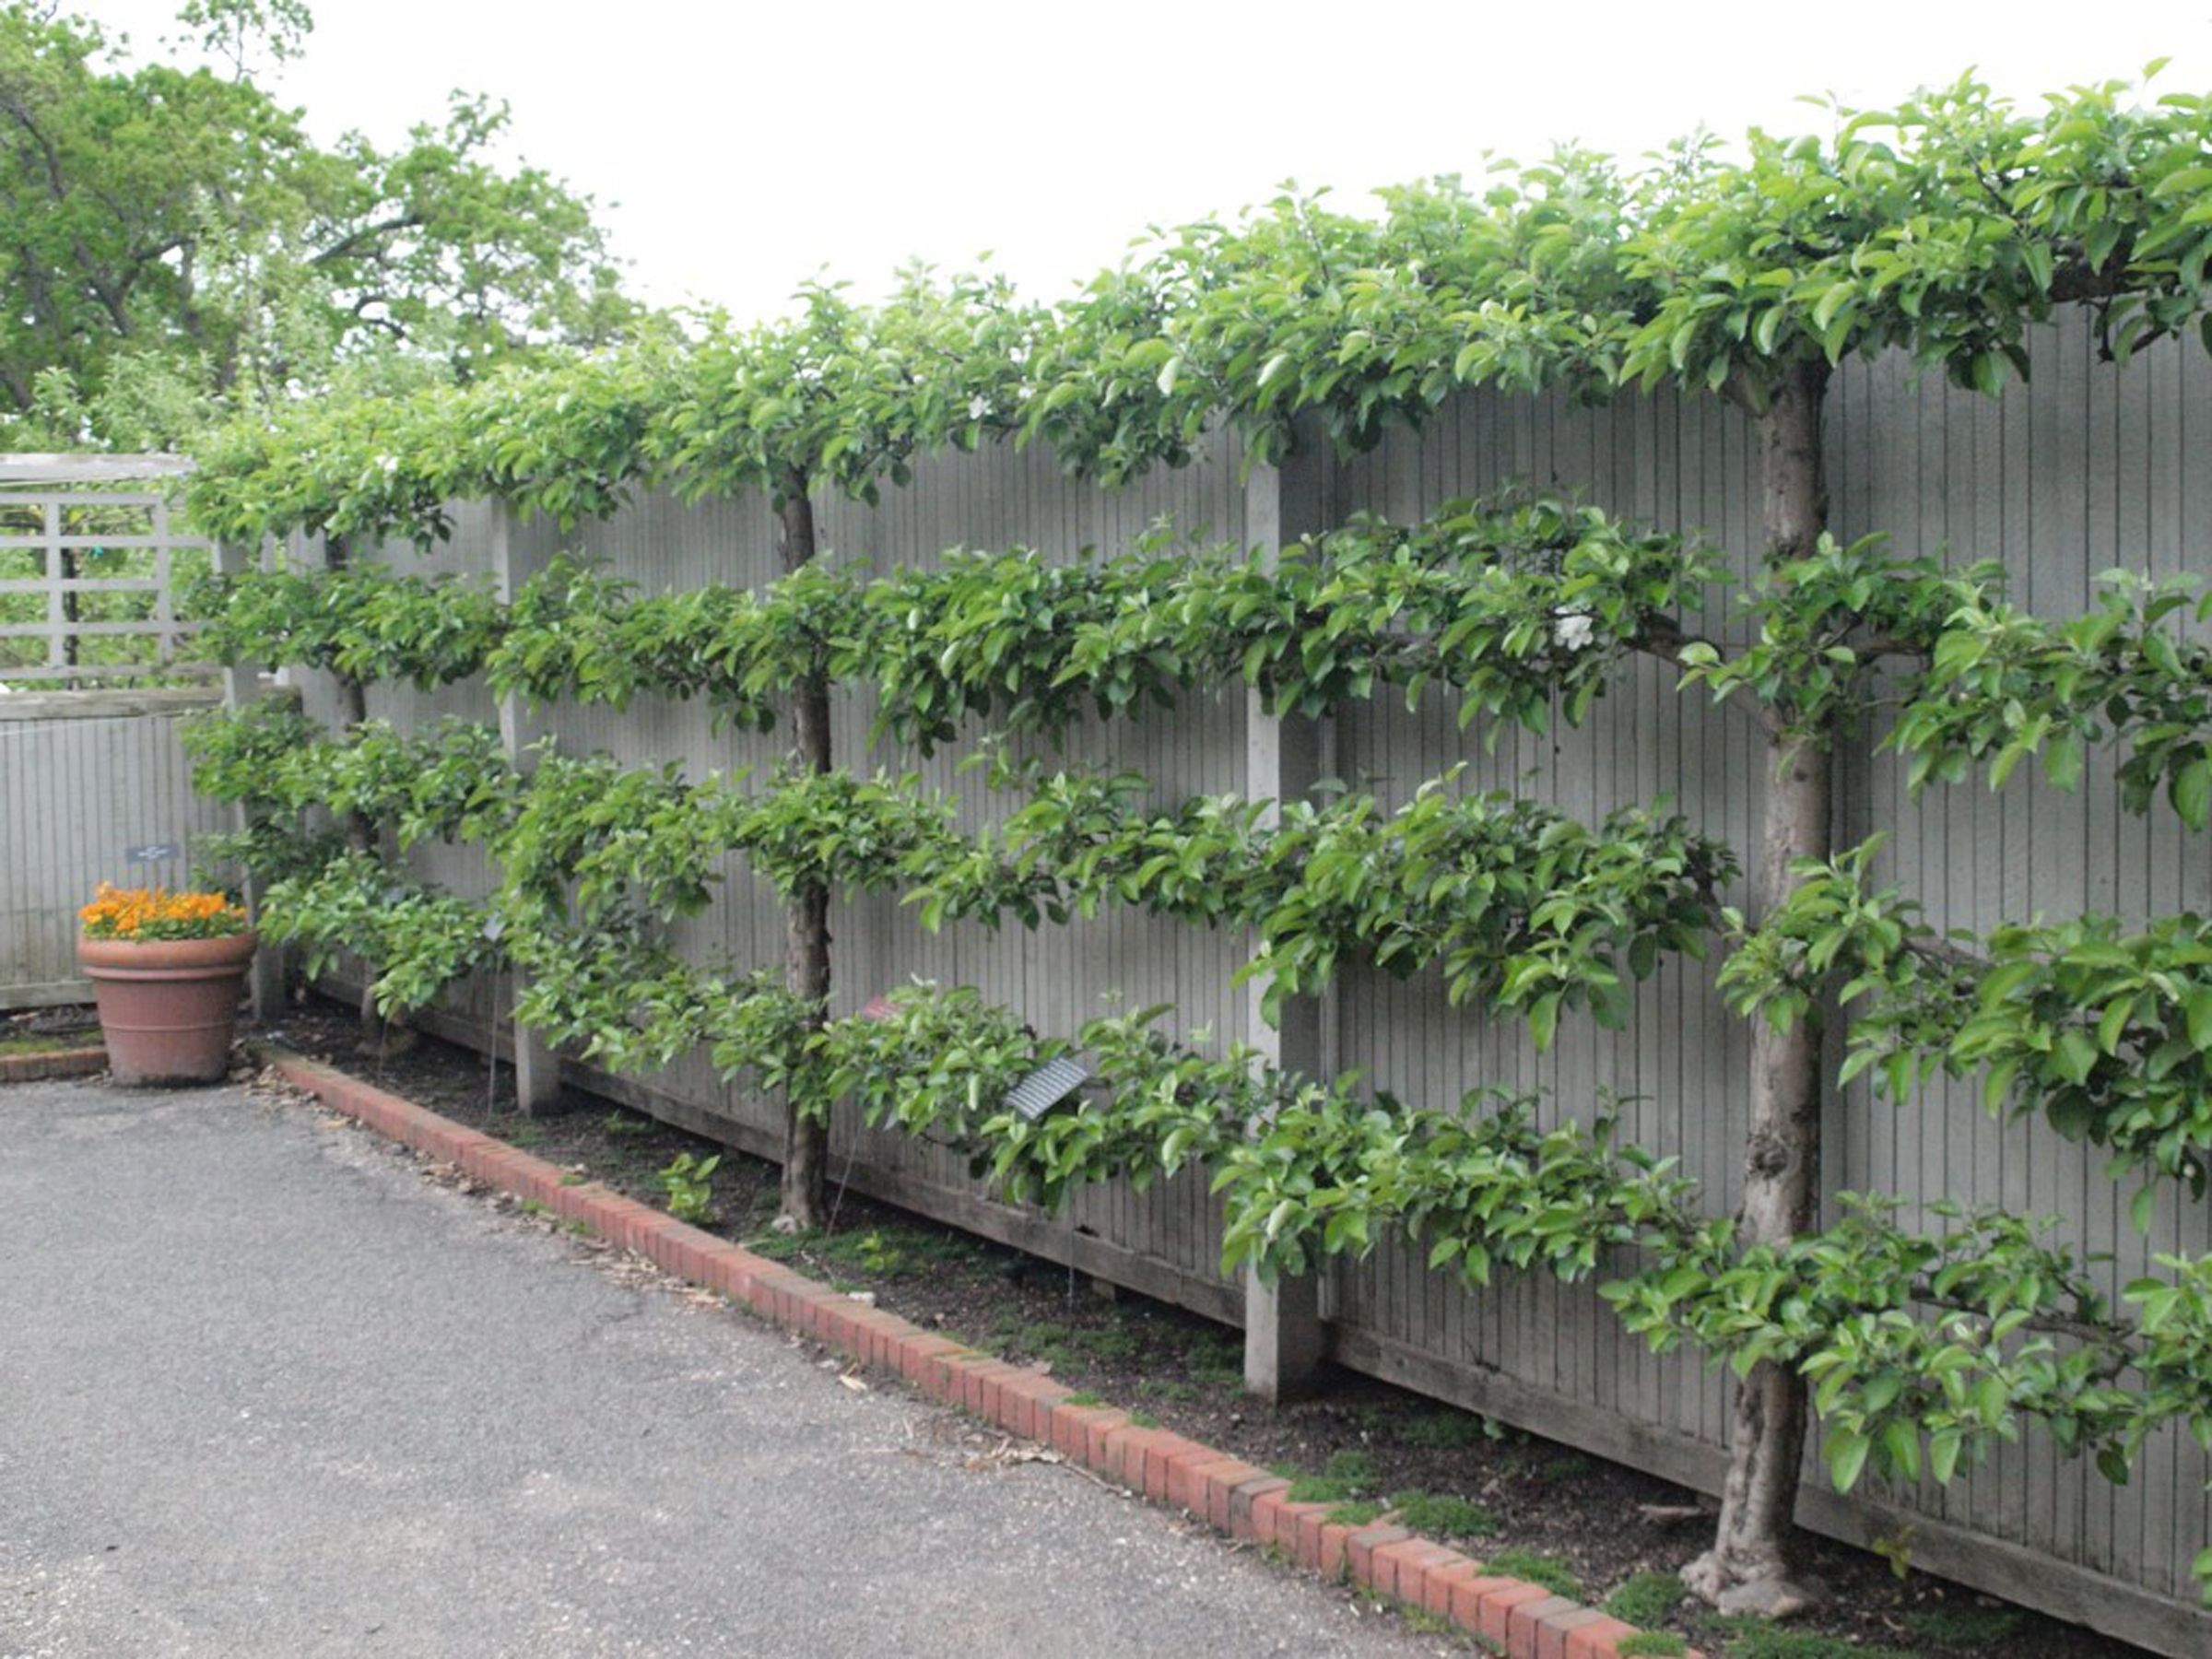 Creative Live Fence Plants Ideas To Block Street View 640 x 480